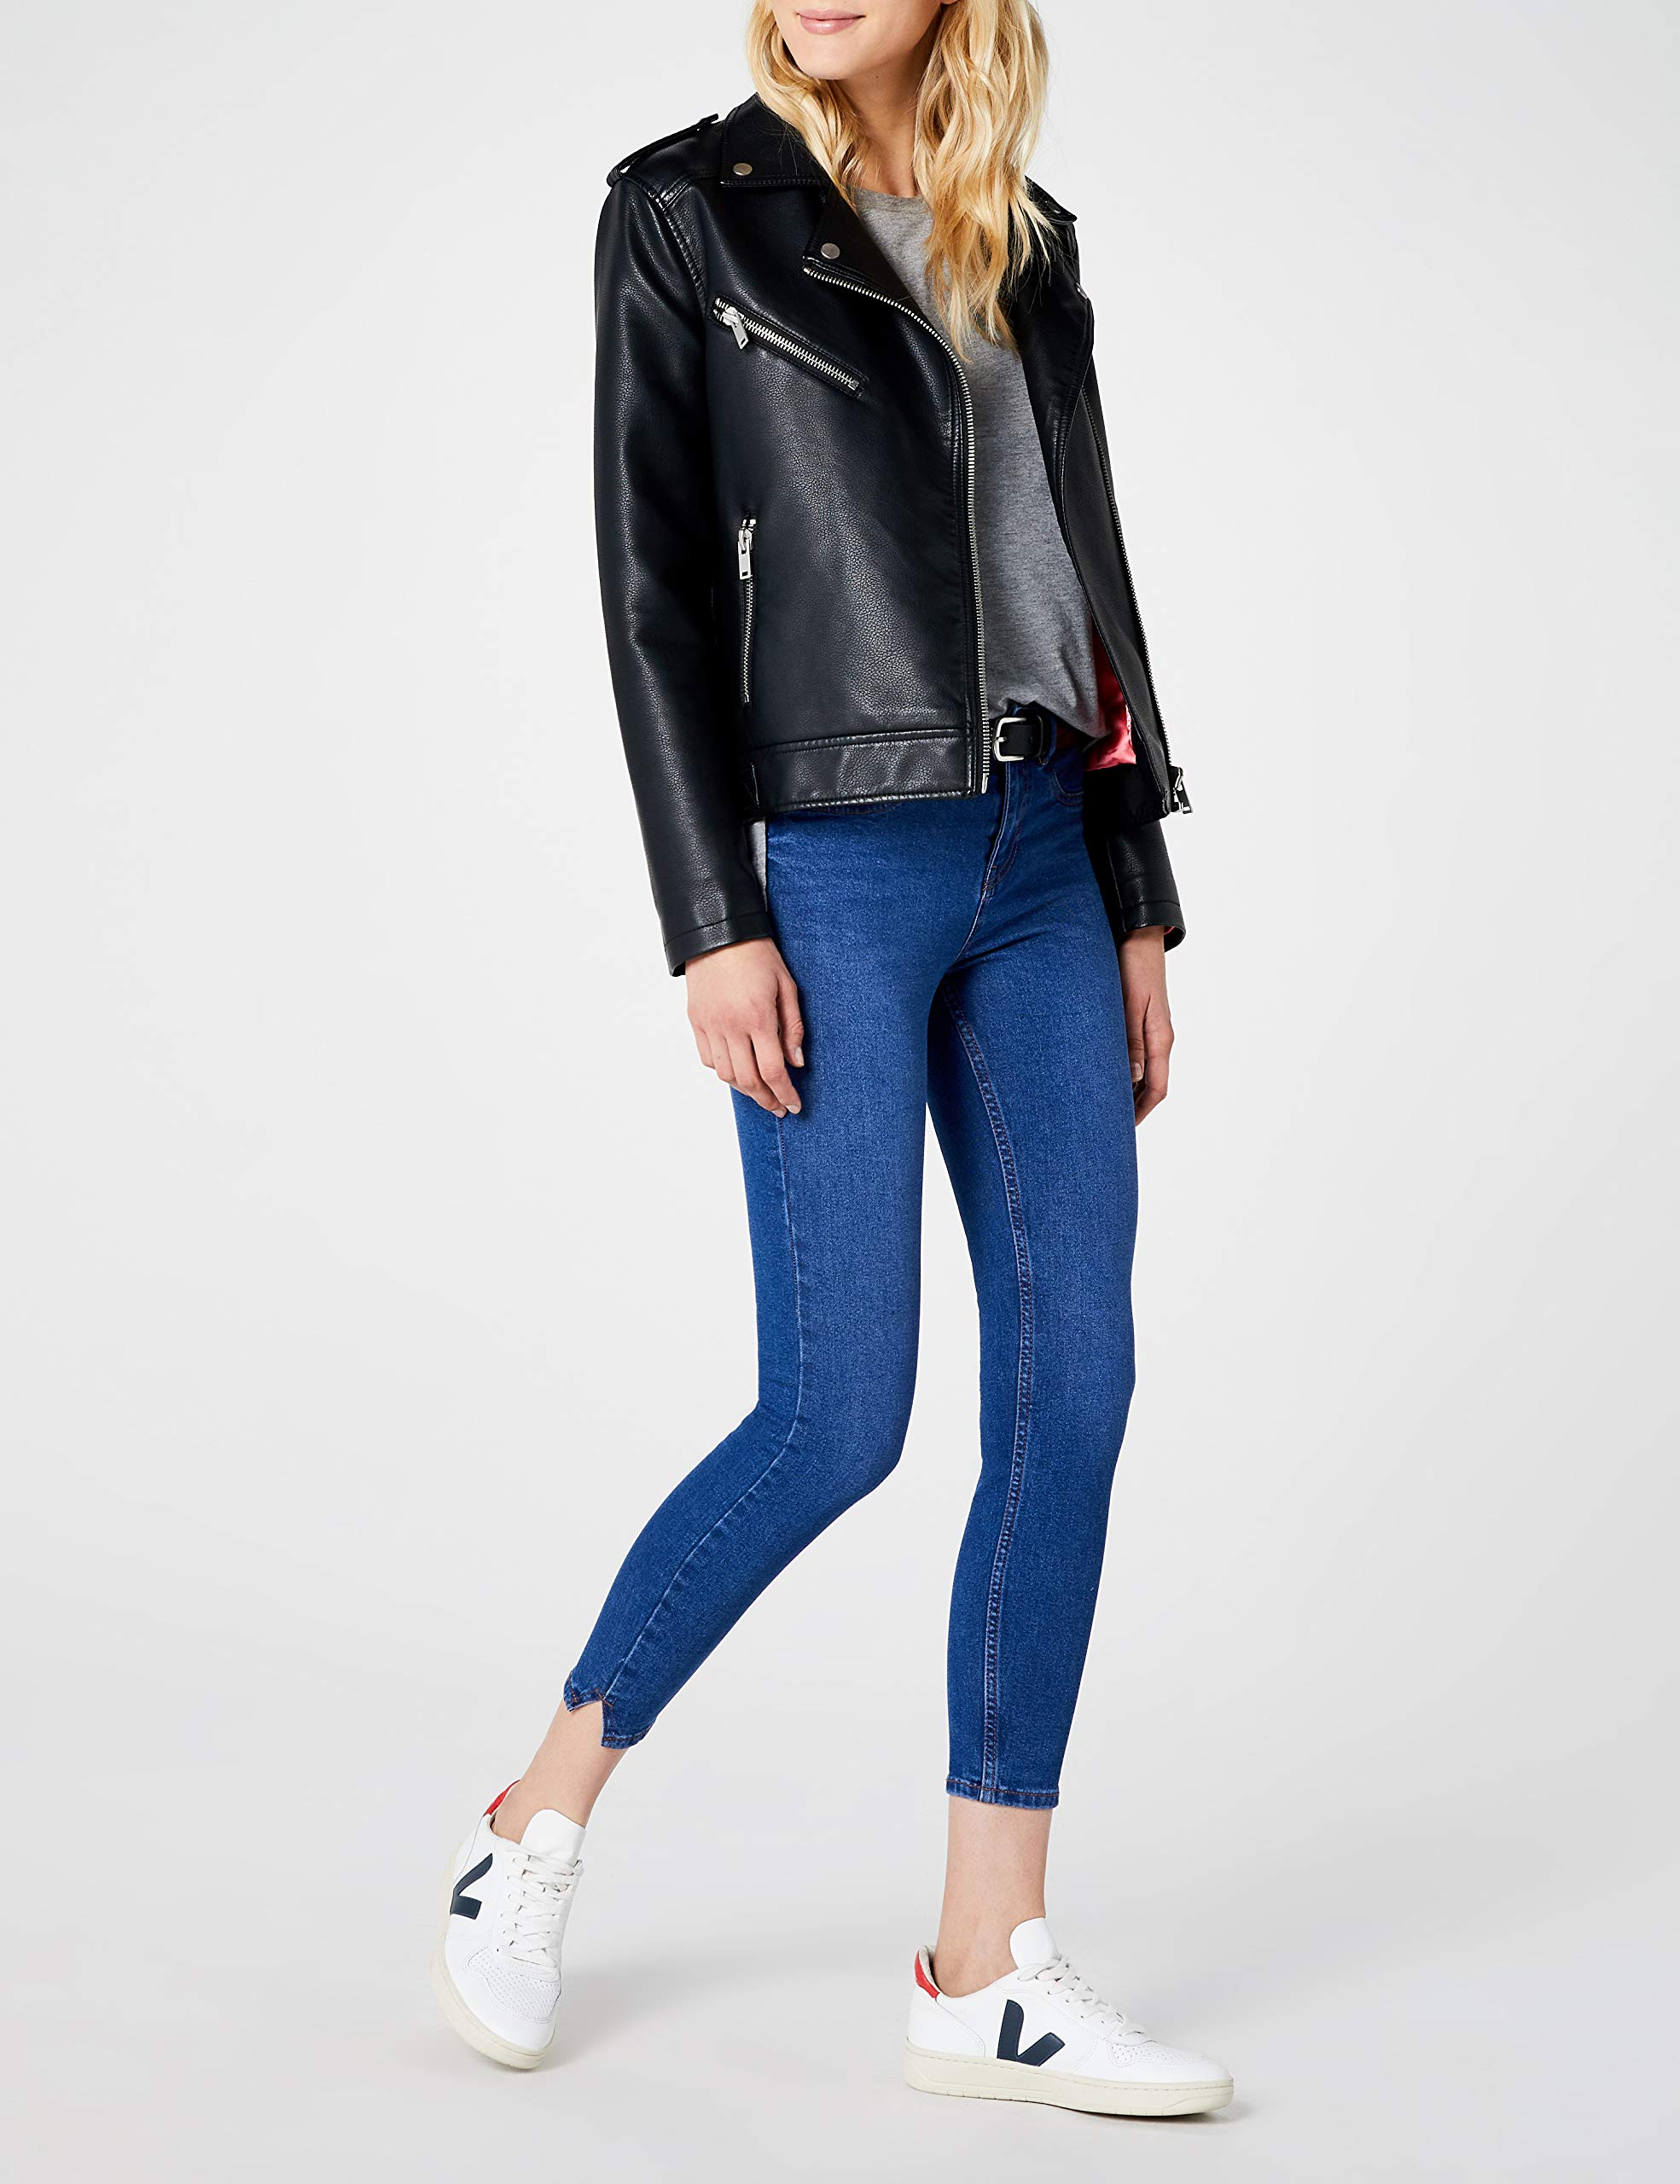 New Look Women's Skinny Jeans 32